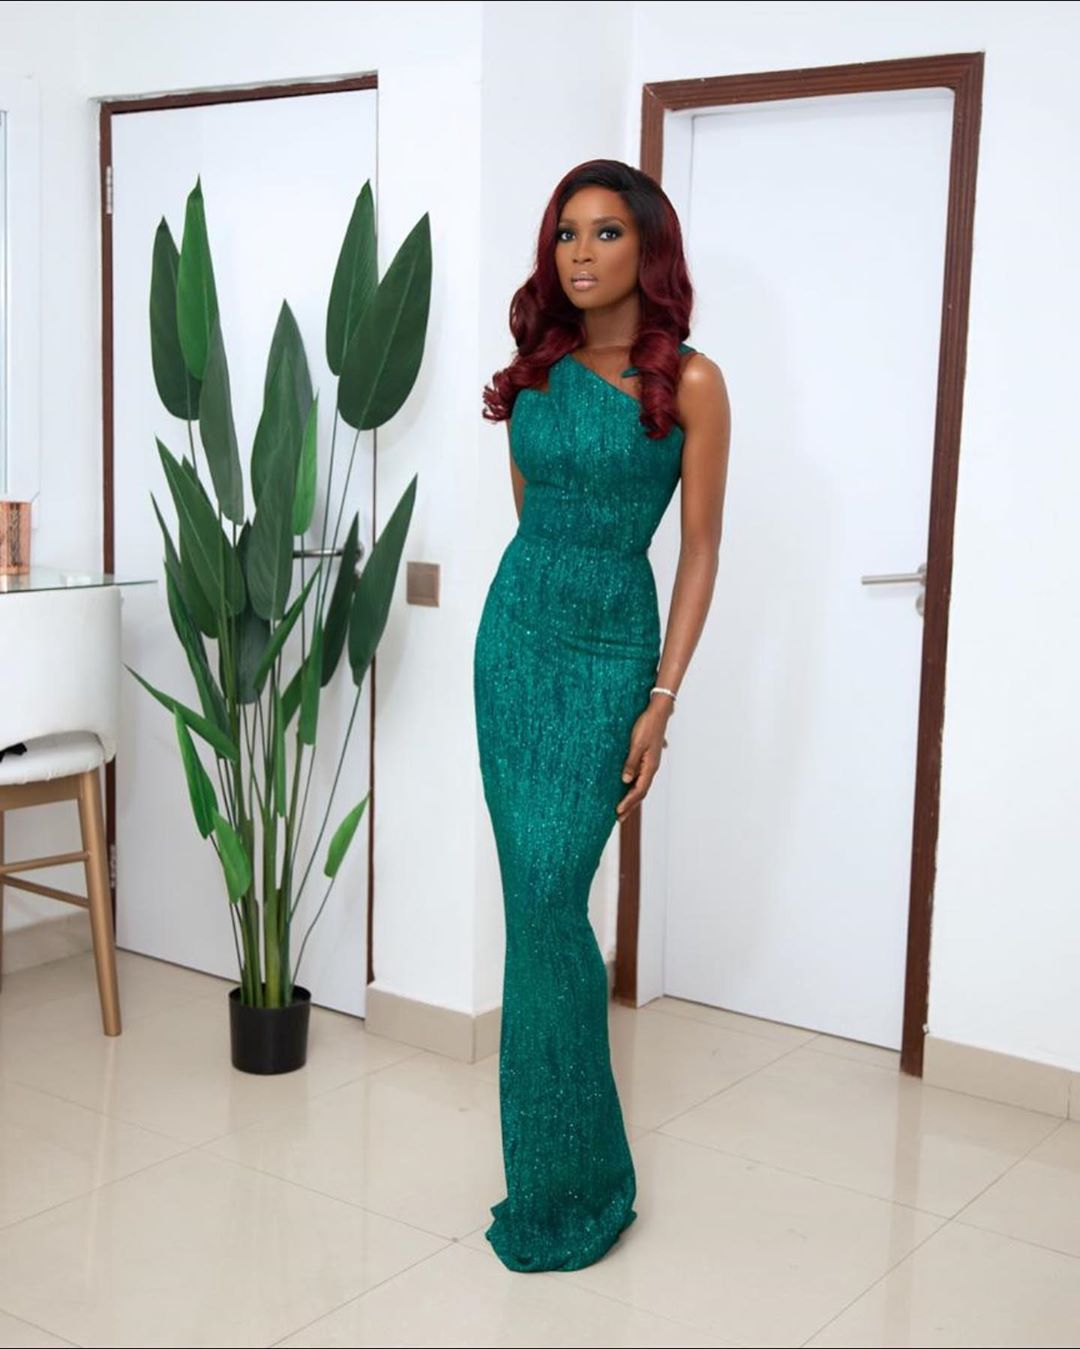 Jemima Osunde Looks Ready For An Elaborate In Event In Her Sleek Pretty Gown